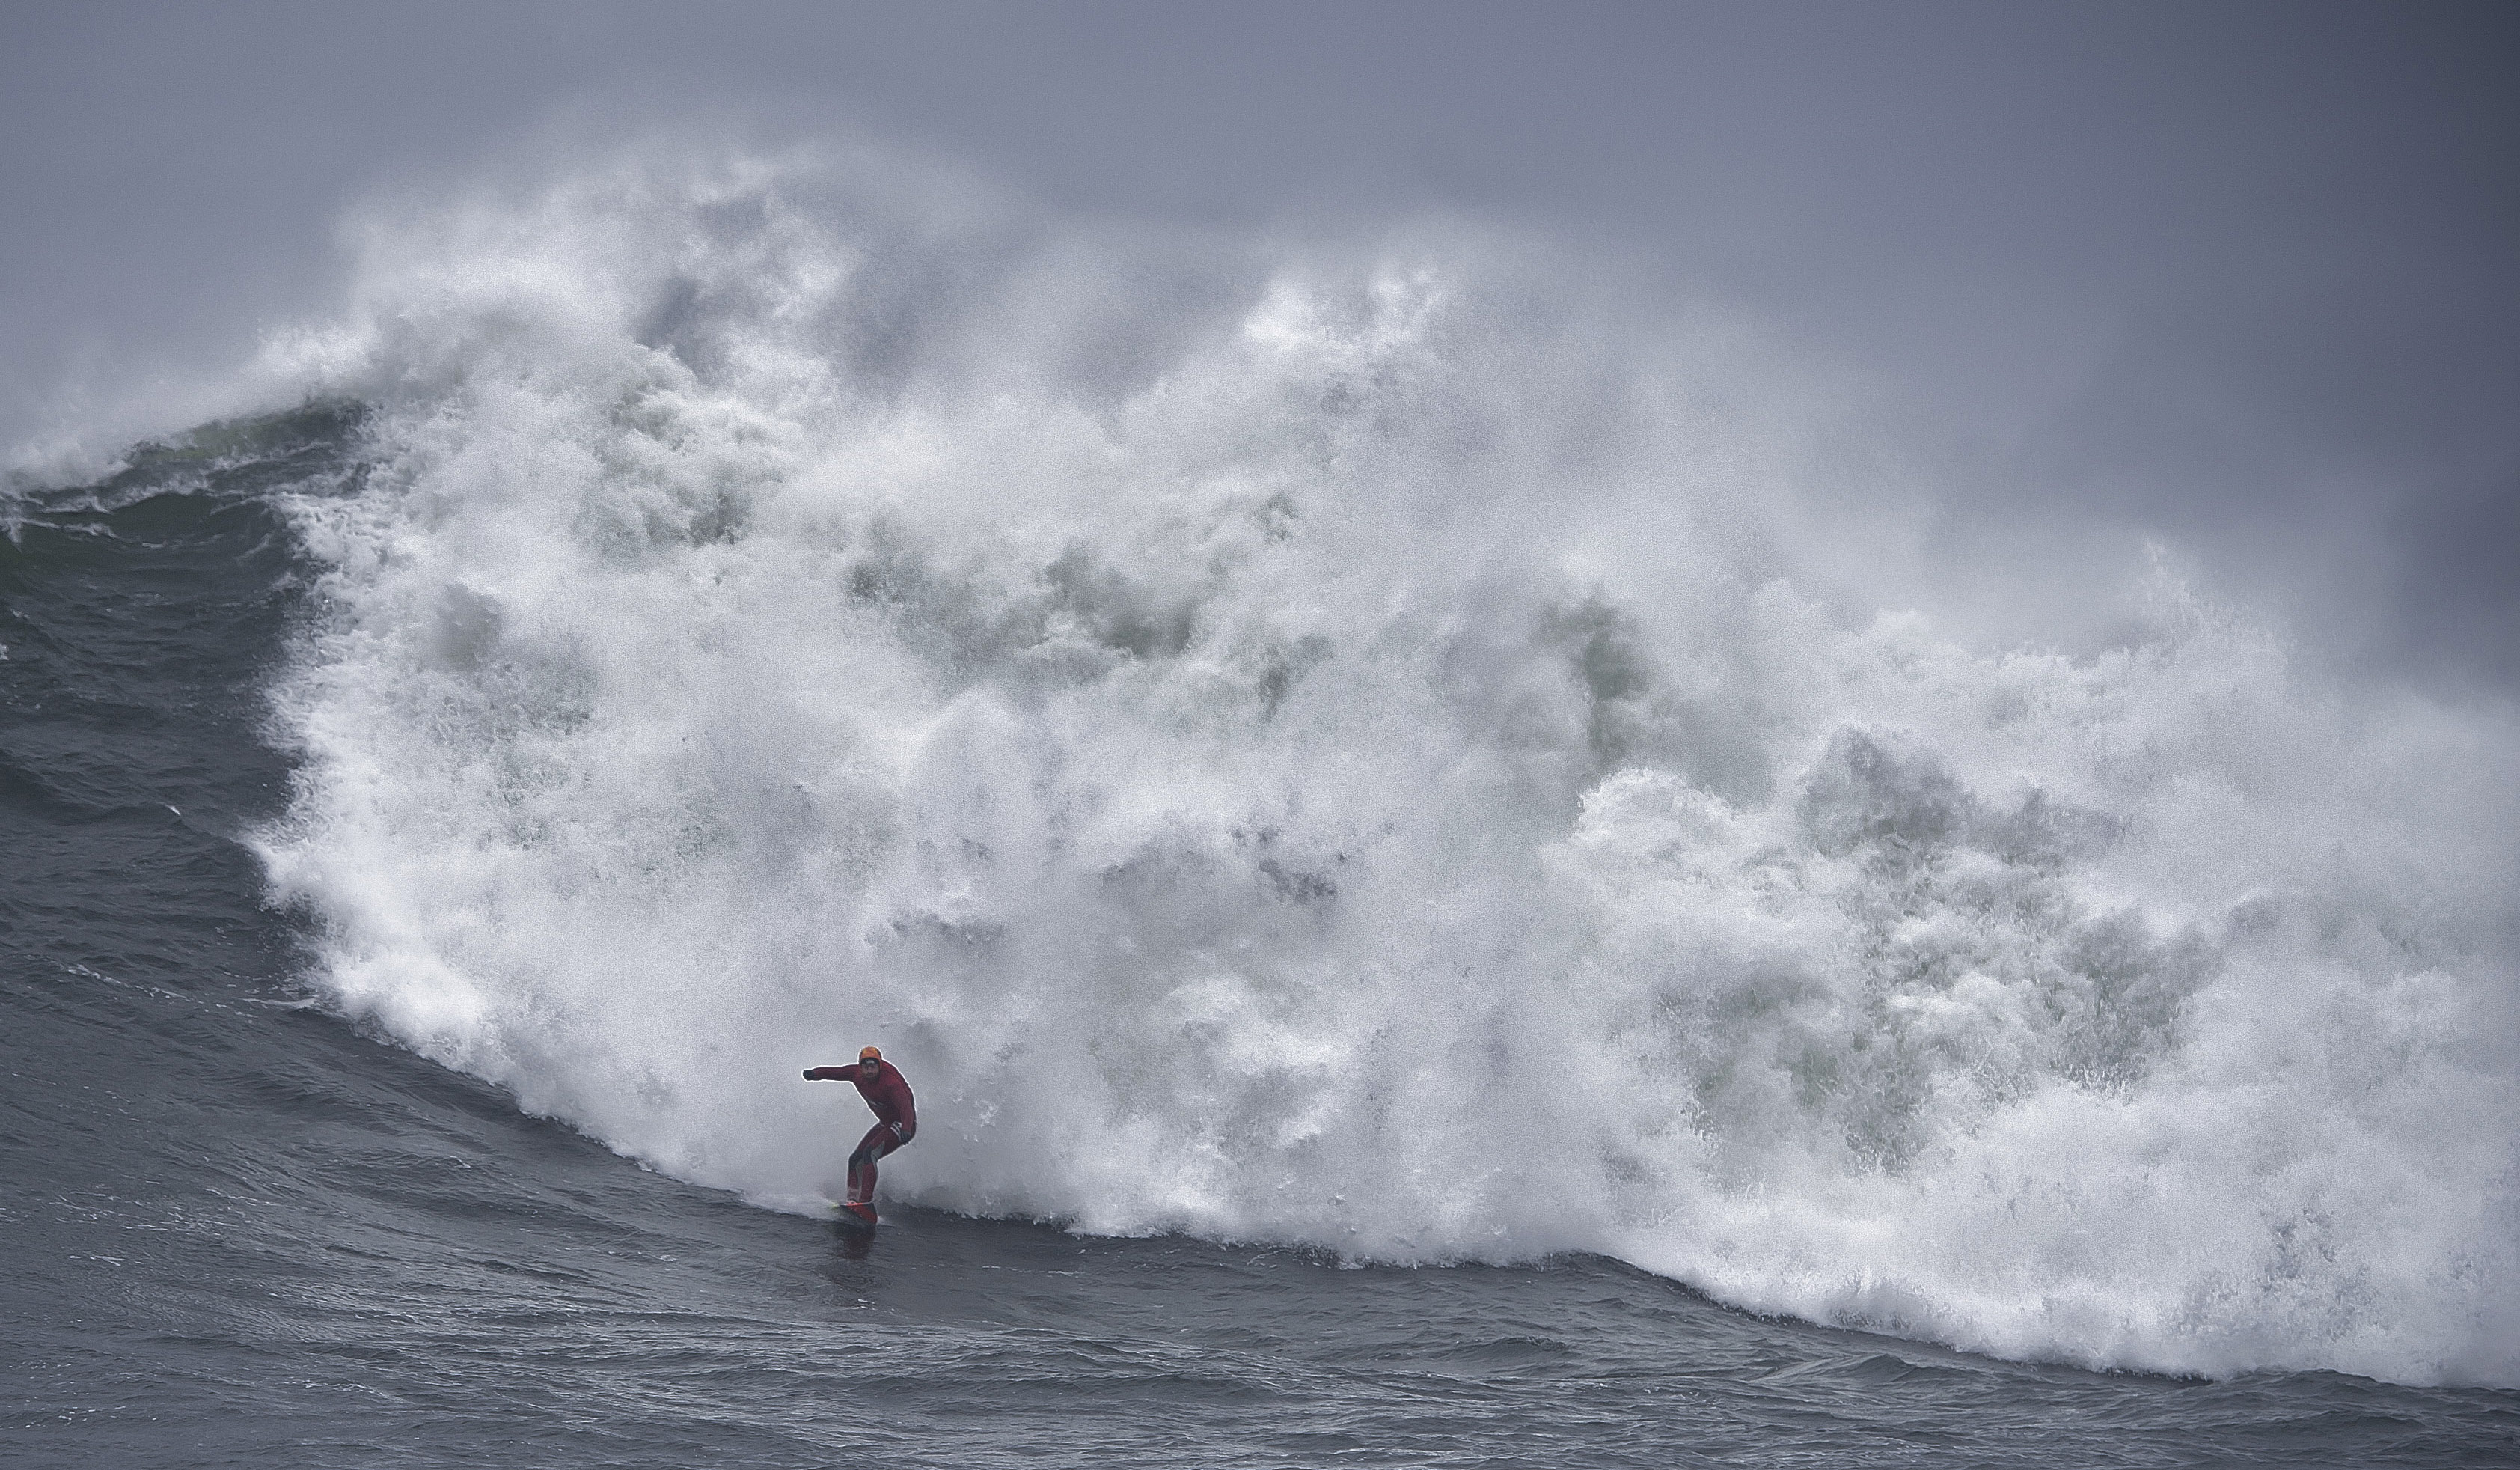 Al Mennie surfing over a submerged reef far off the west coast. Picture by Charles McQuillan